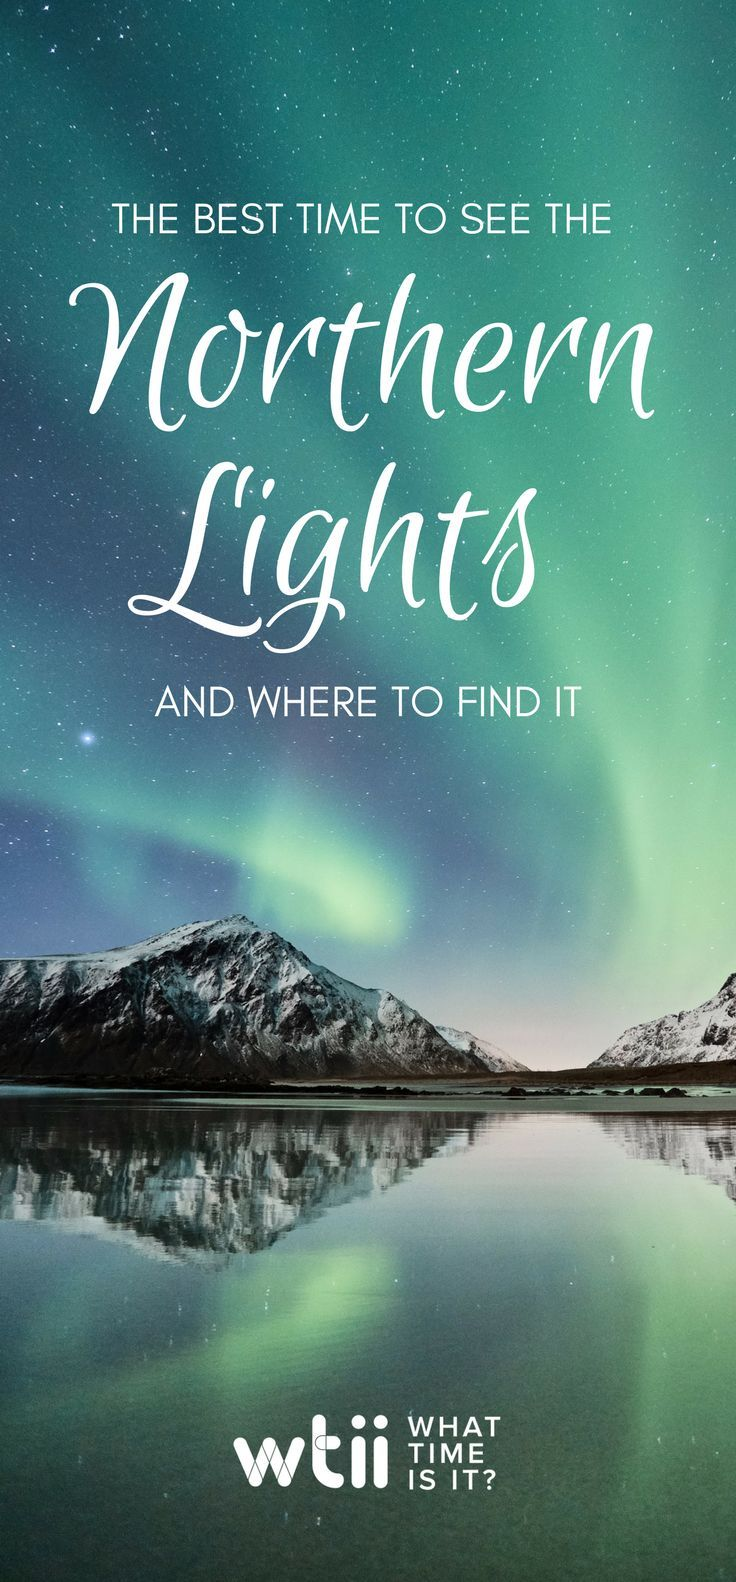 Hereu0027s Your Guide For The Best Time And Place To See The Northern Lights! #